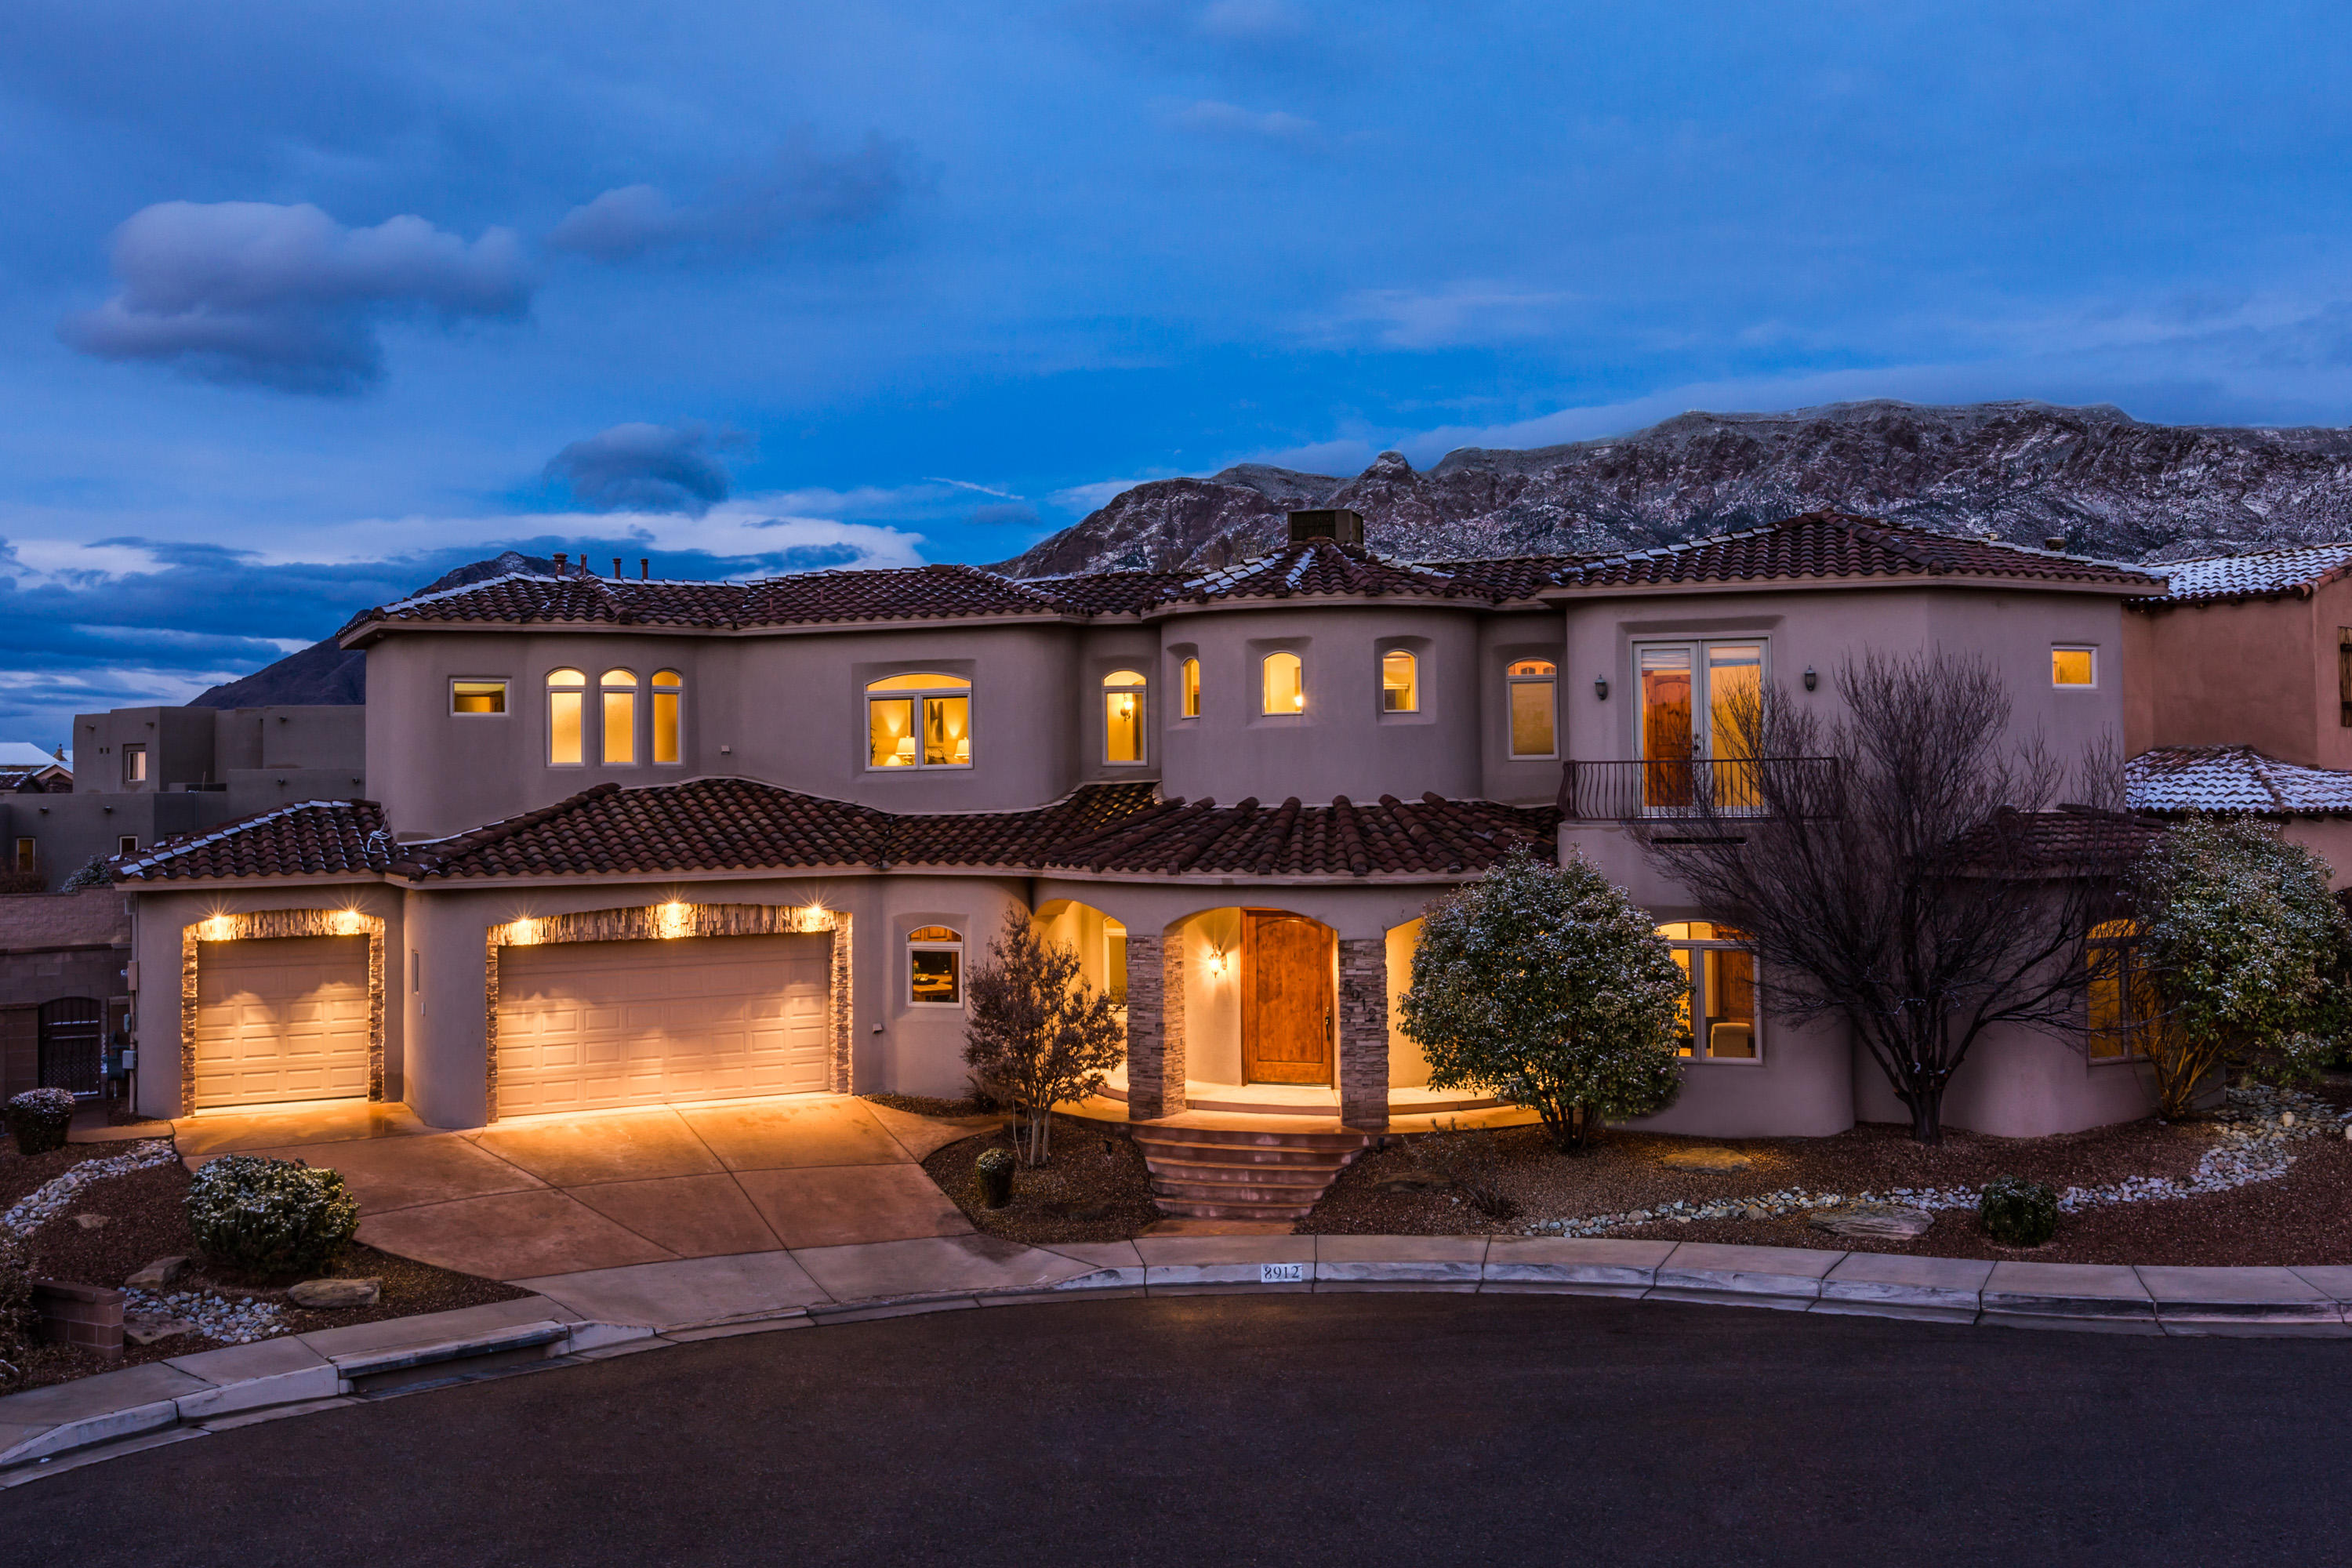 Amazing Sandia Mountain views from this elegant Renaissance Builders 2 story! Quite cul-de-sac, only 2 blocks form La Cueva High School. 5 bedroom, 4 bath stunner with gorgeous Calderwood cabinets and solid wood doors. Kitchen is open to formal dining and living room with soaring ceilings, cozy fireplace and lots of natural light! 2 bedrooms, 2 baths on main level. Luxurious curved staircase leads to the owner's suite, boasting double doors, sitting area, amazing bath and best of all, a view deck to die for! An office workstation, 2 more bedrooms and a jack-n-jill bath round out the 2nd level. Backyard is private with huge covered patio, synthetic turf and more space than you would first imagine.